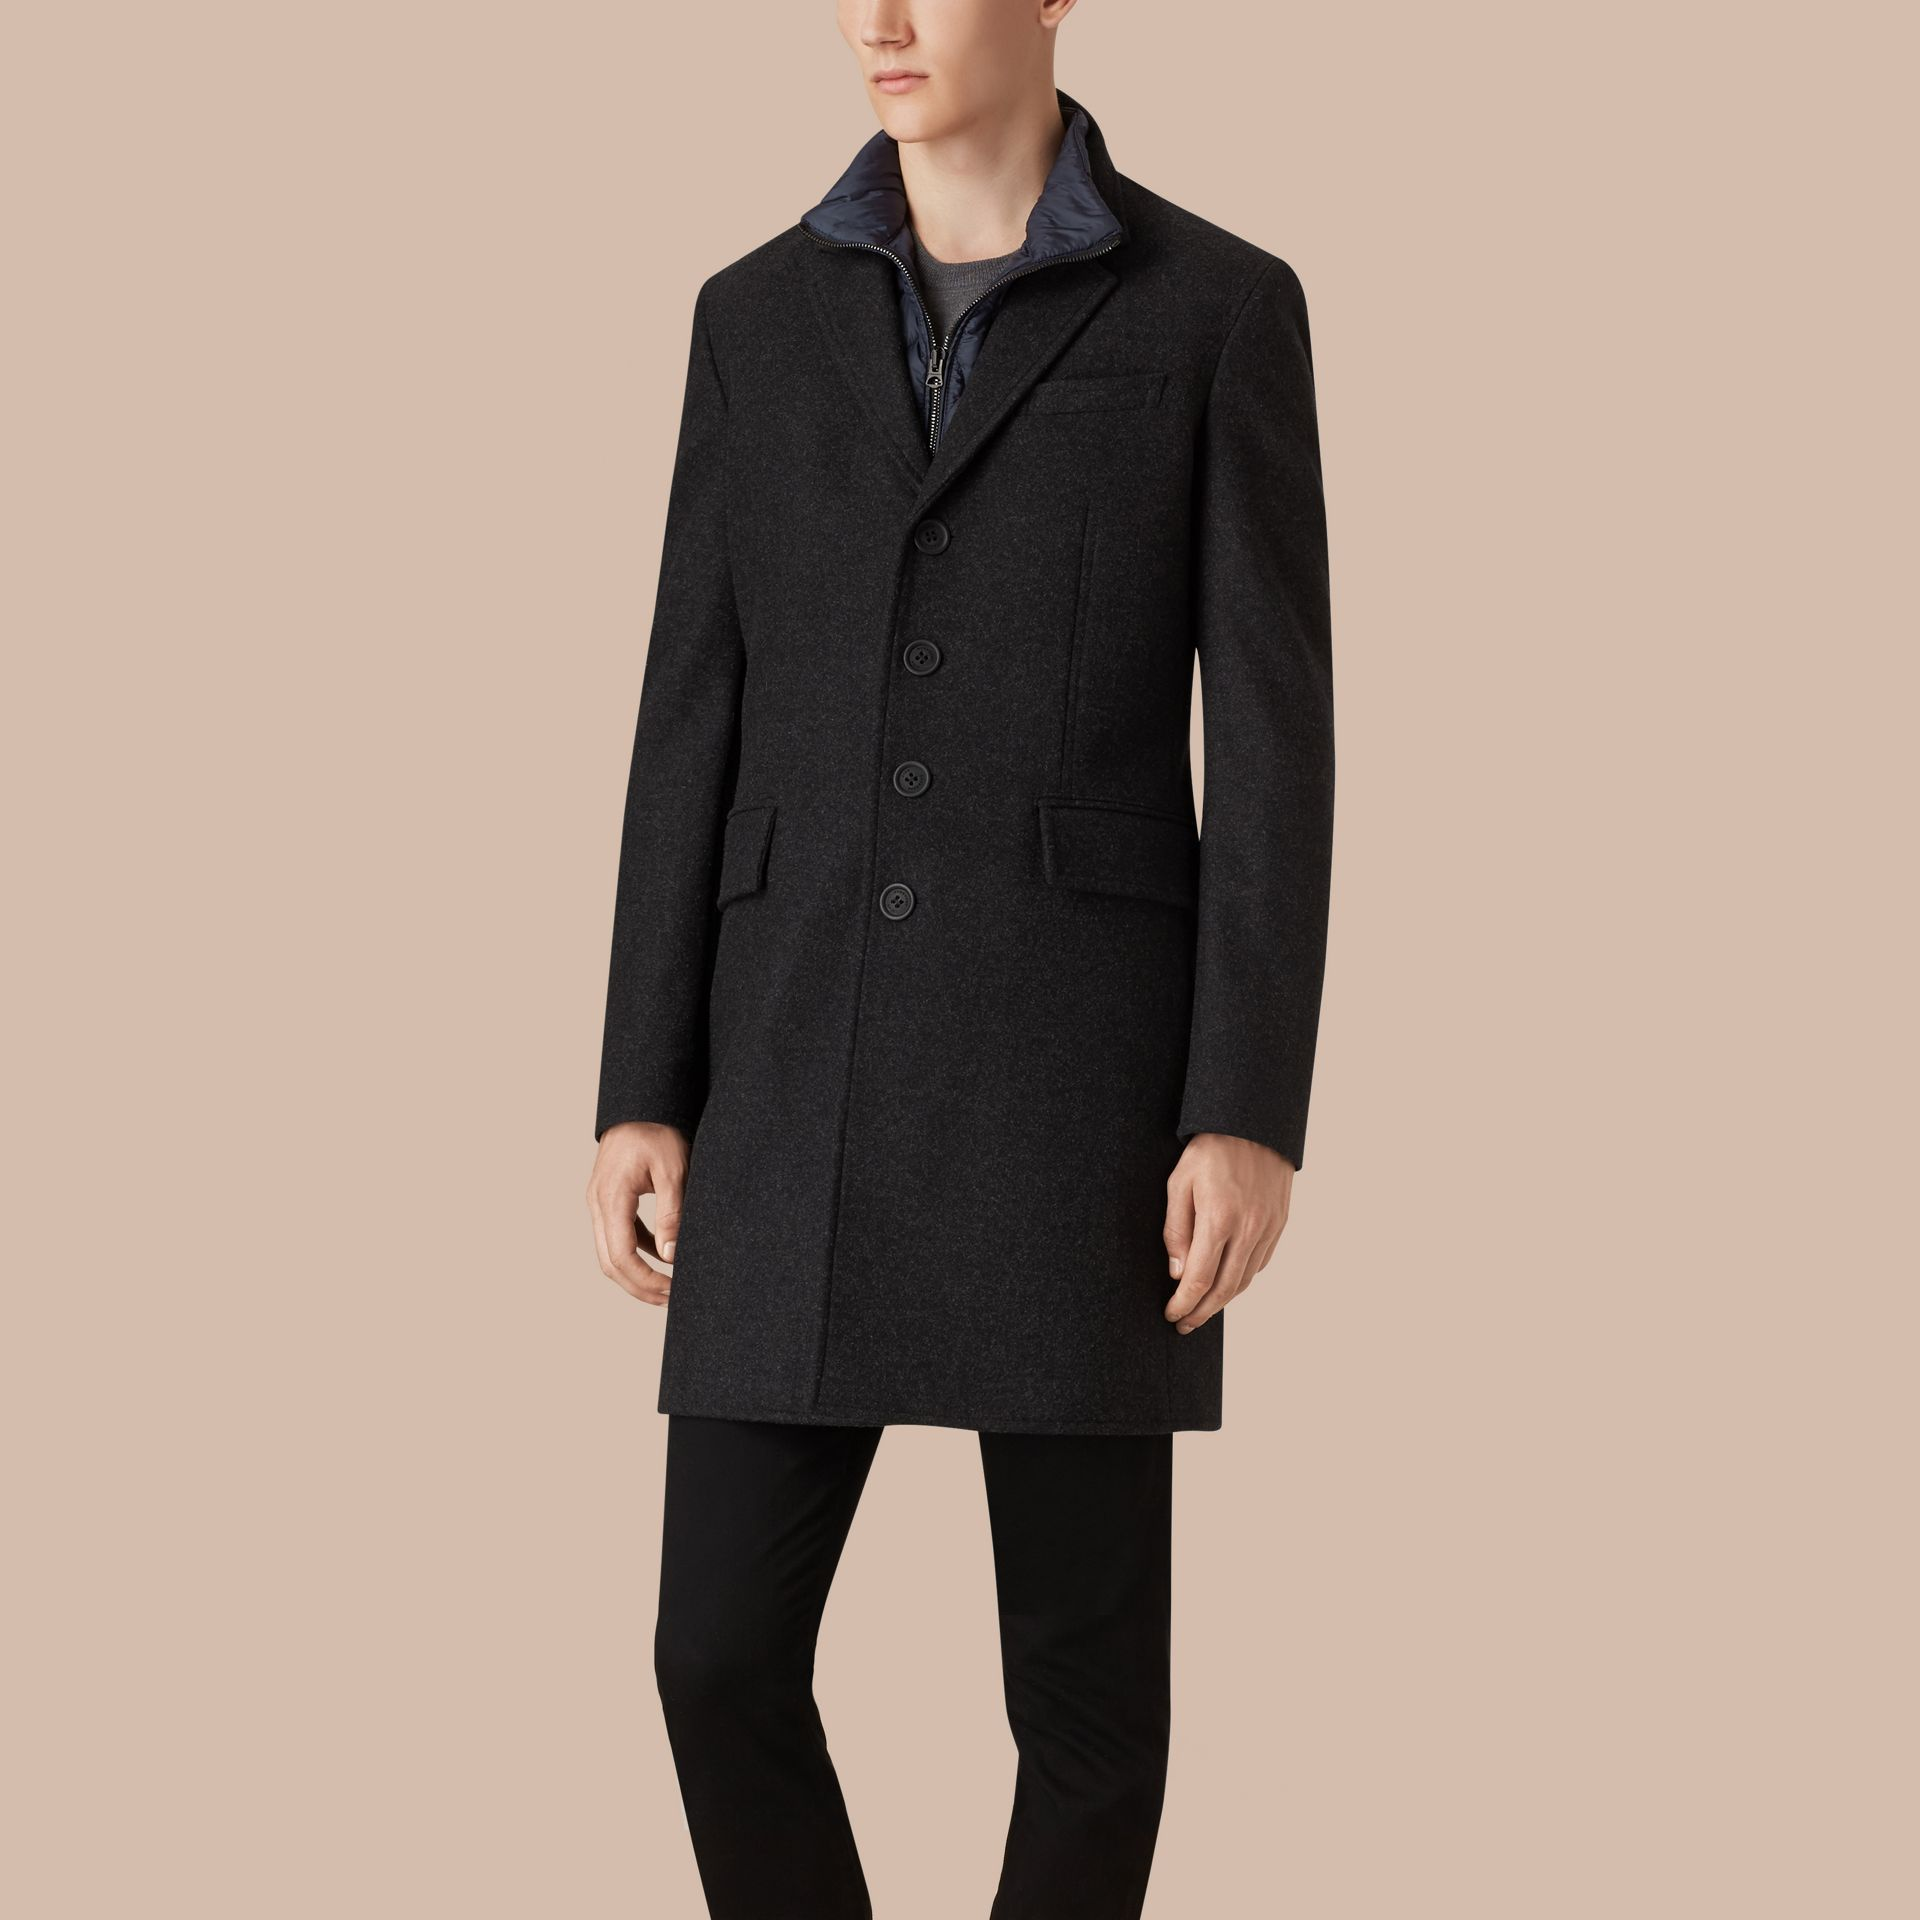 Dark charcoal melange Wool Cashmere Melton Coat with Warmer Dark Charcoal Melange - gallery image 4